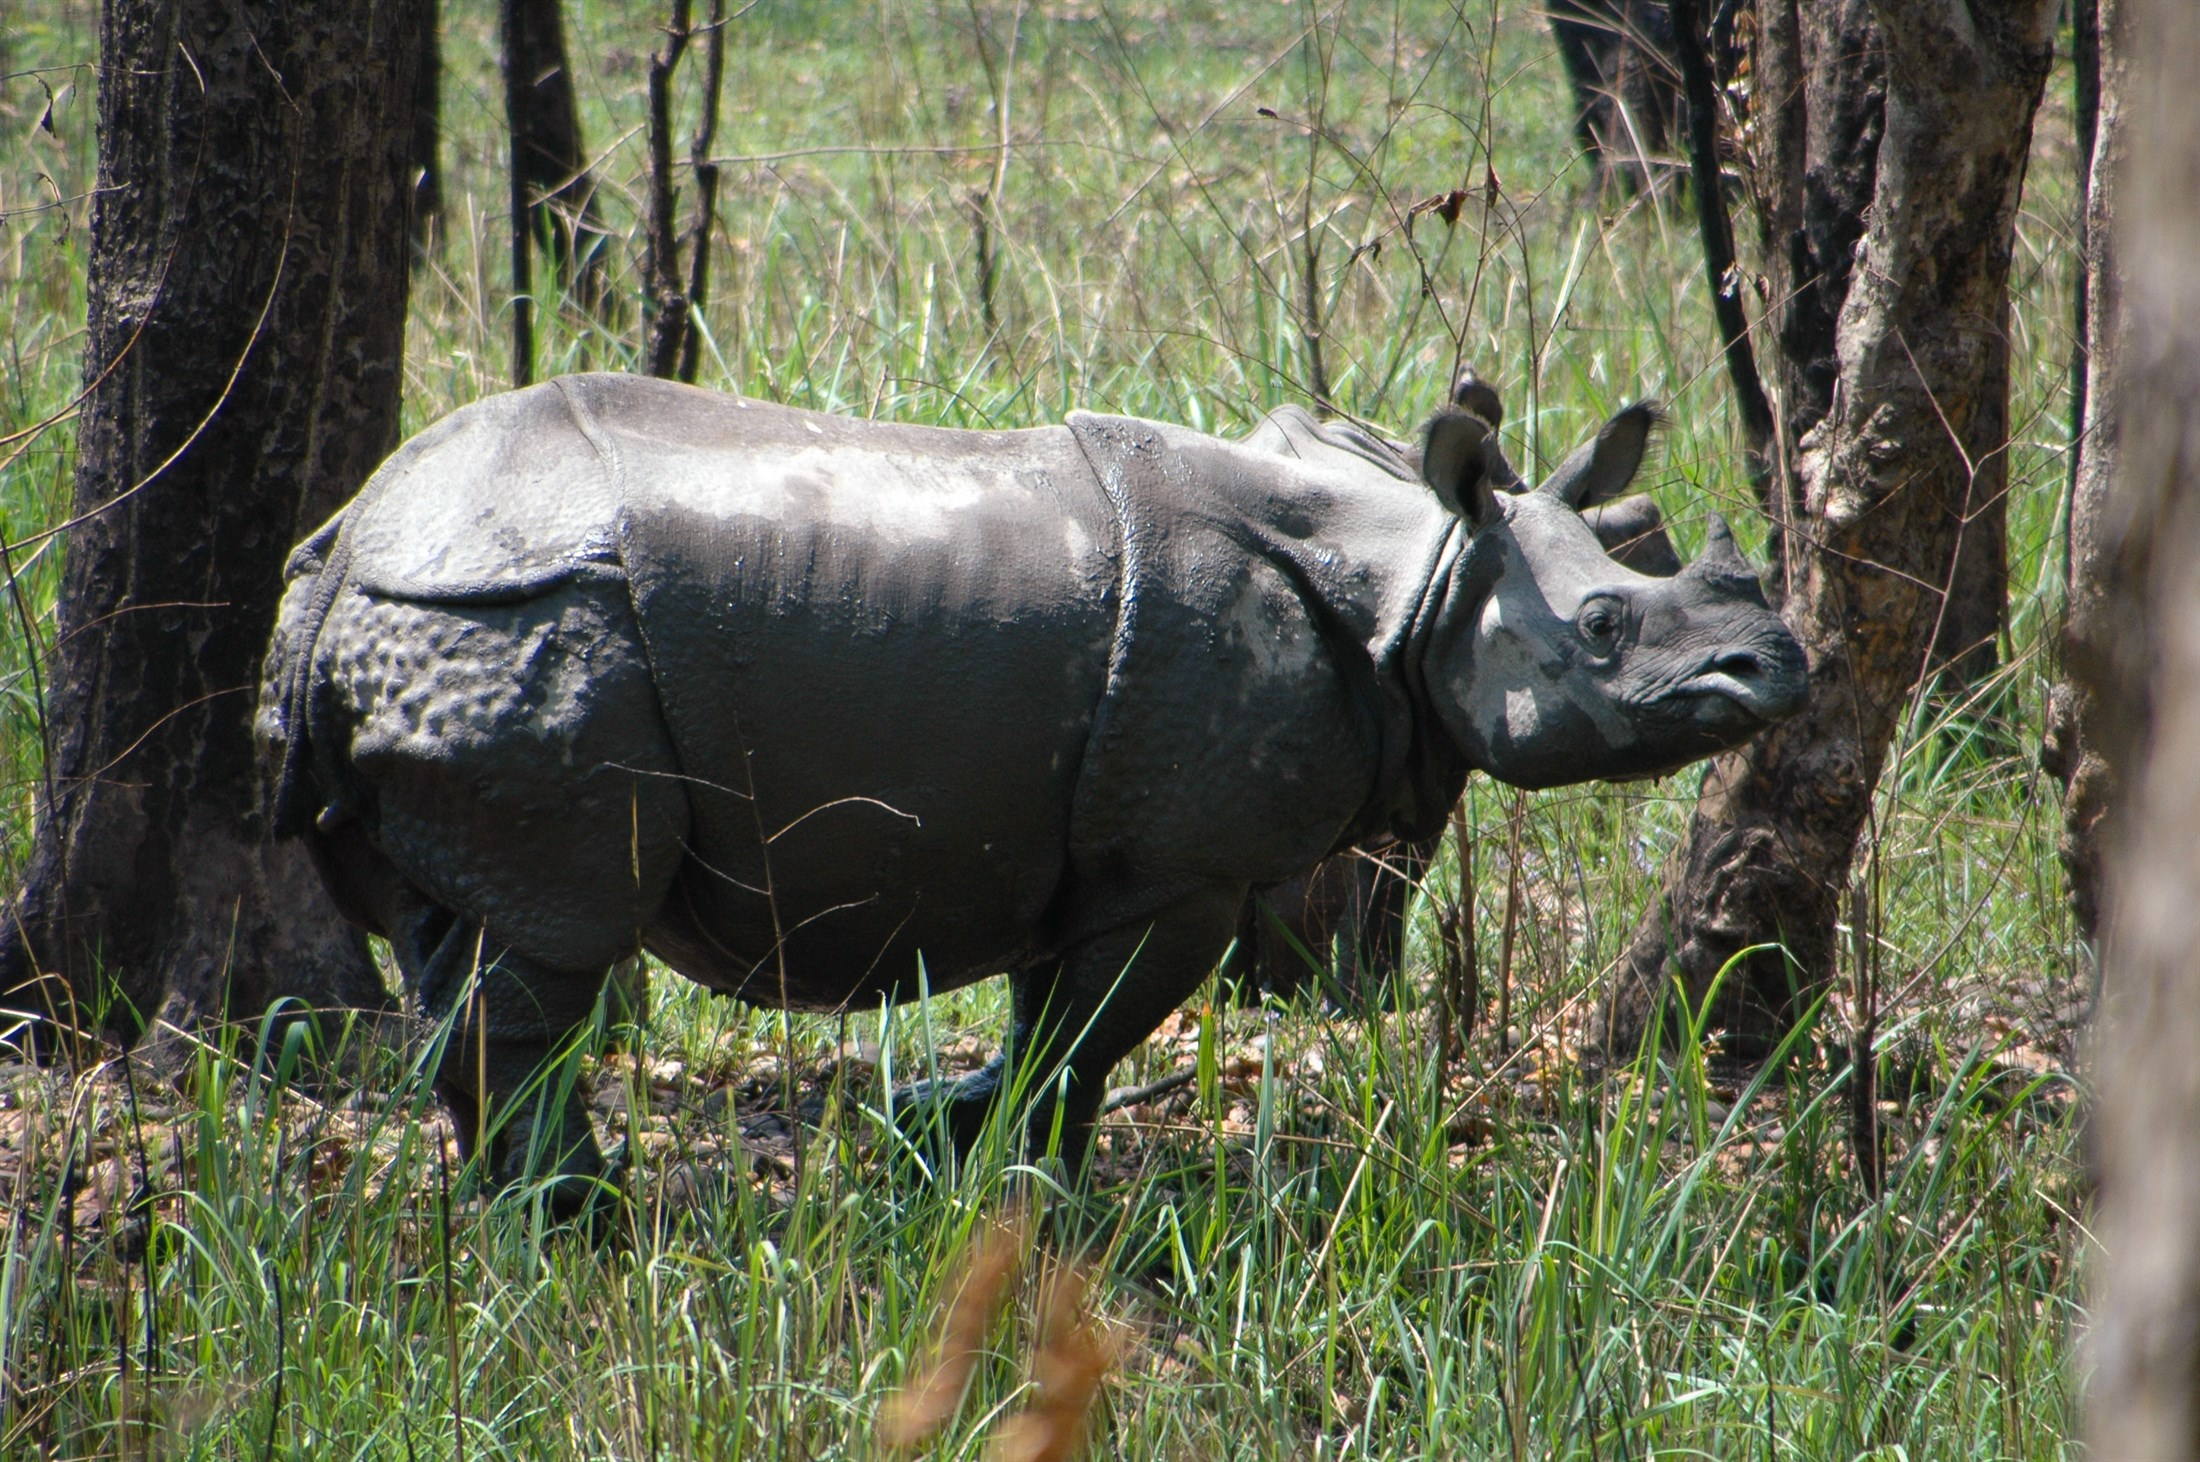 Indian rhinoceros (Rhinoceros unicornio)